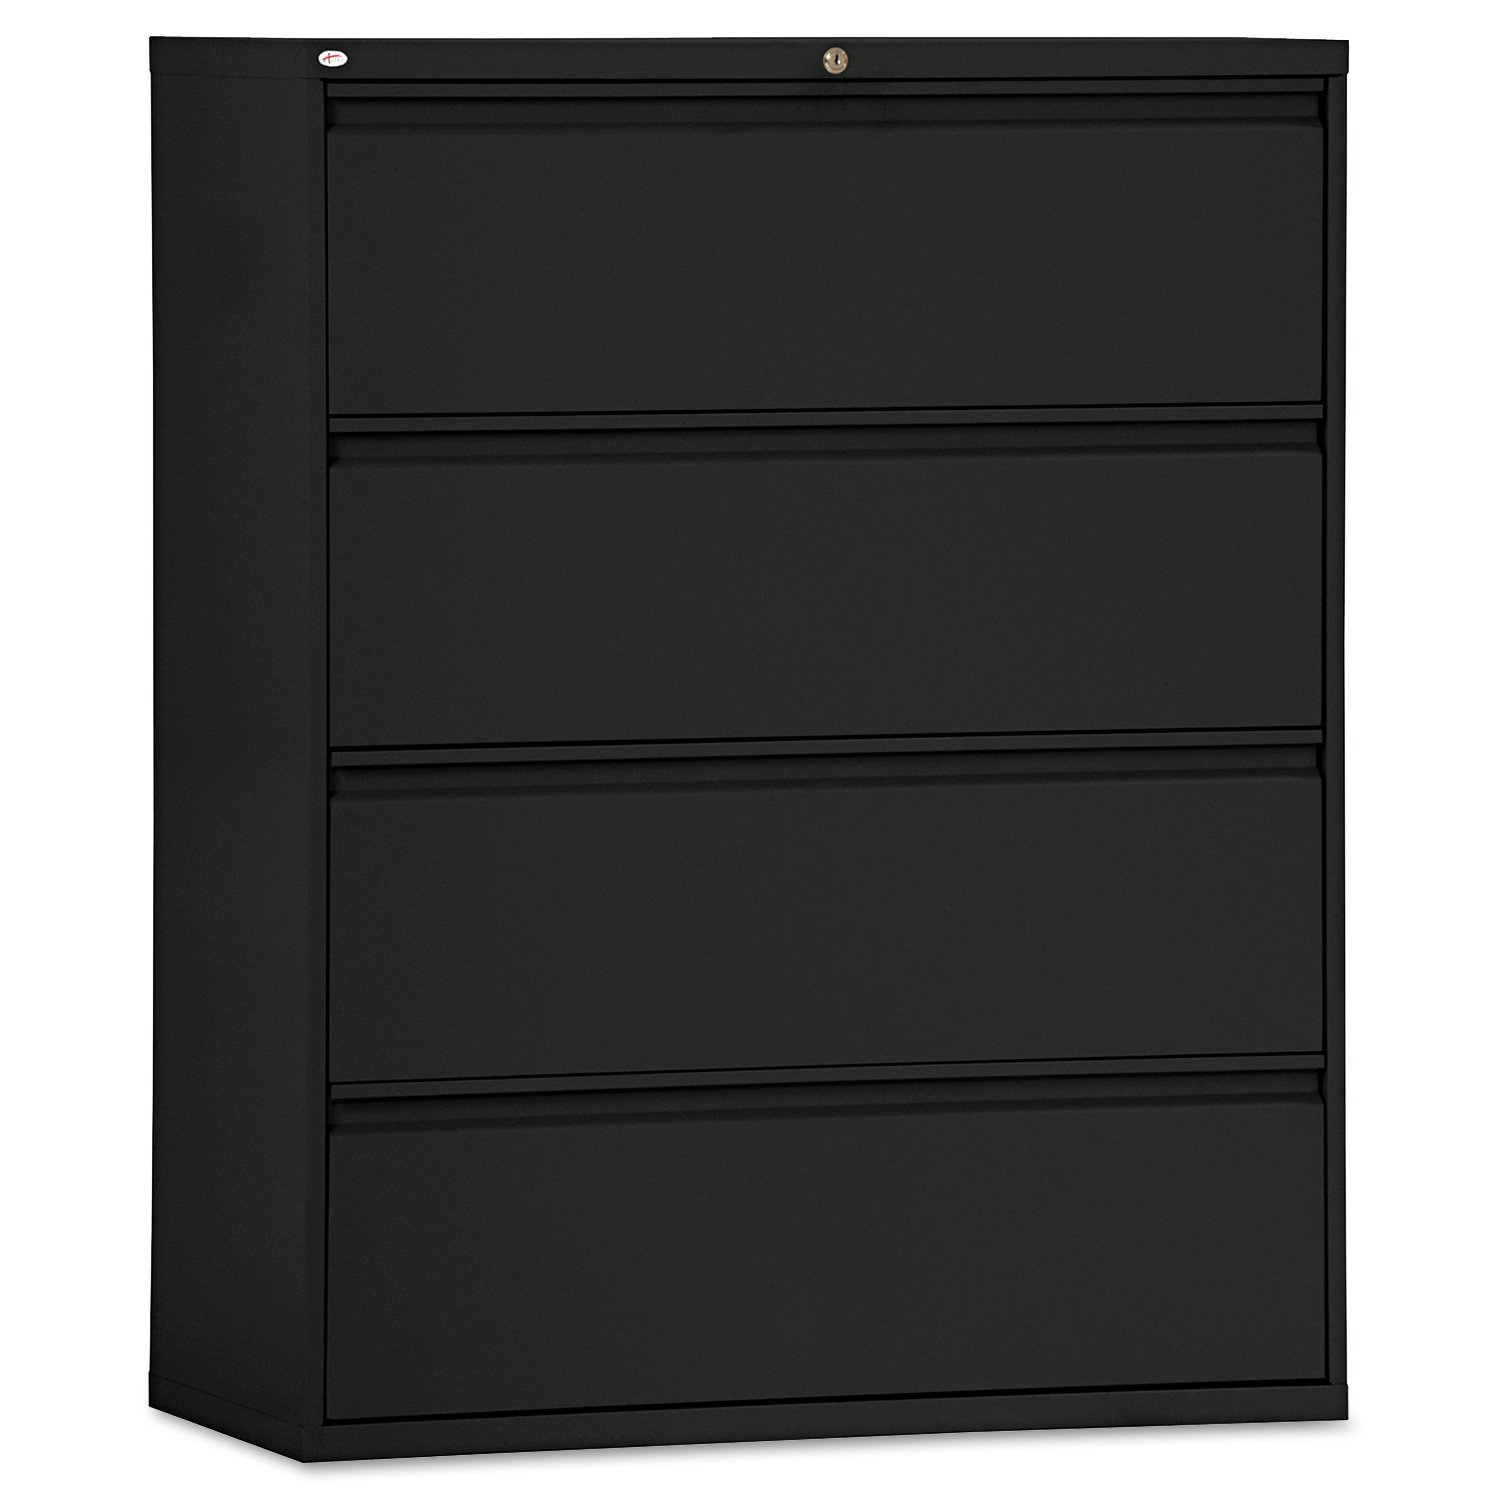 Amazon.com: Alera 4-Drawer Lateral File Cabinet, 36 by 19-1/4 by 54-Inch,  Black: Kitchen u0026 Dining